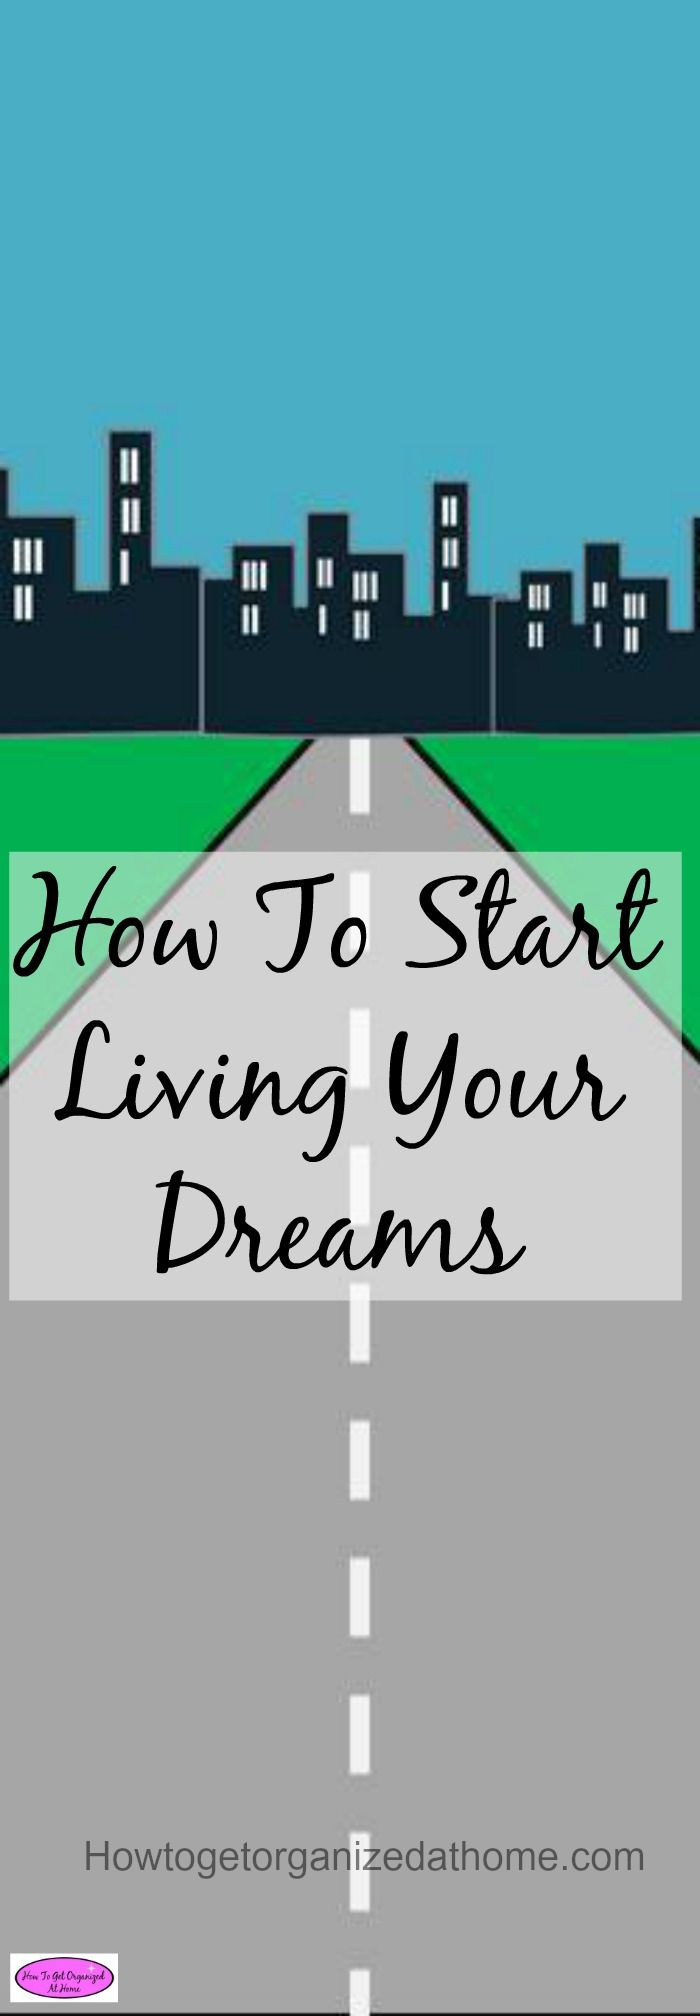 How To Start Living Your Dreams 18